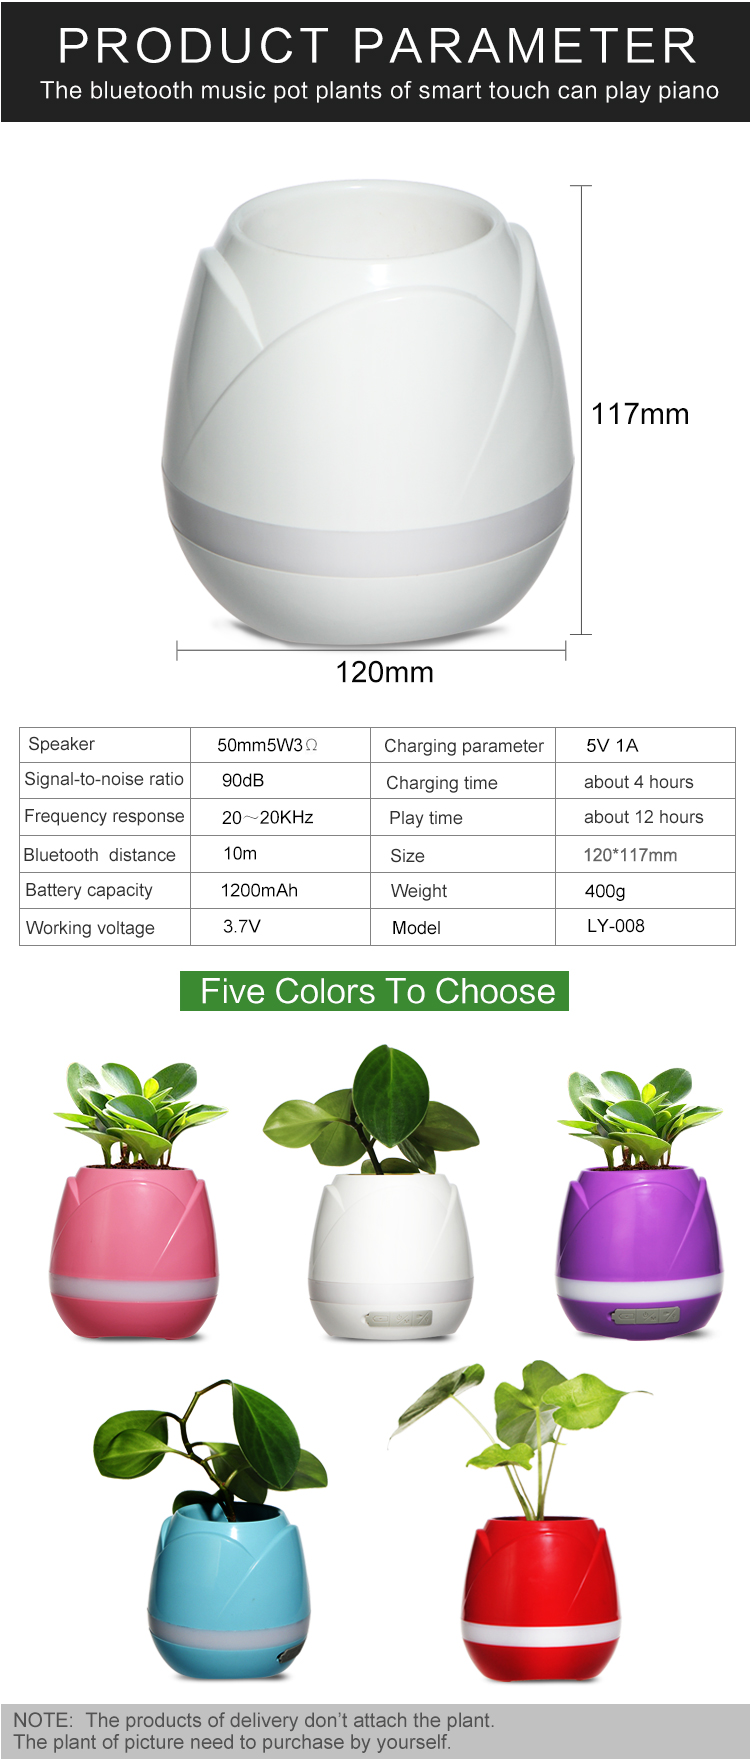 Smart Bluetooth music flowerpot with LED light 2017 patented Petal design for Christmas gift